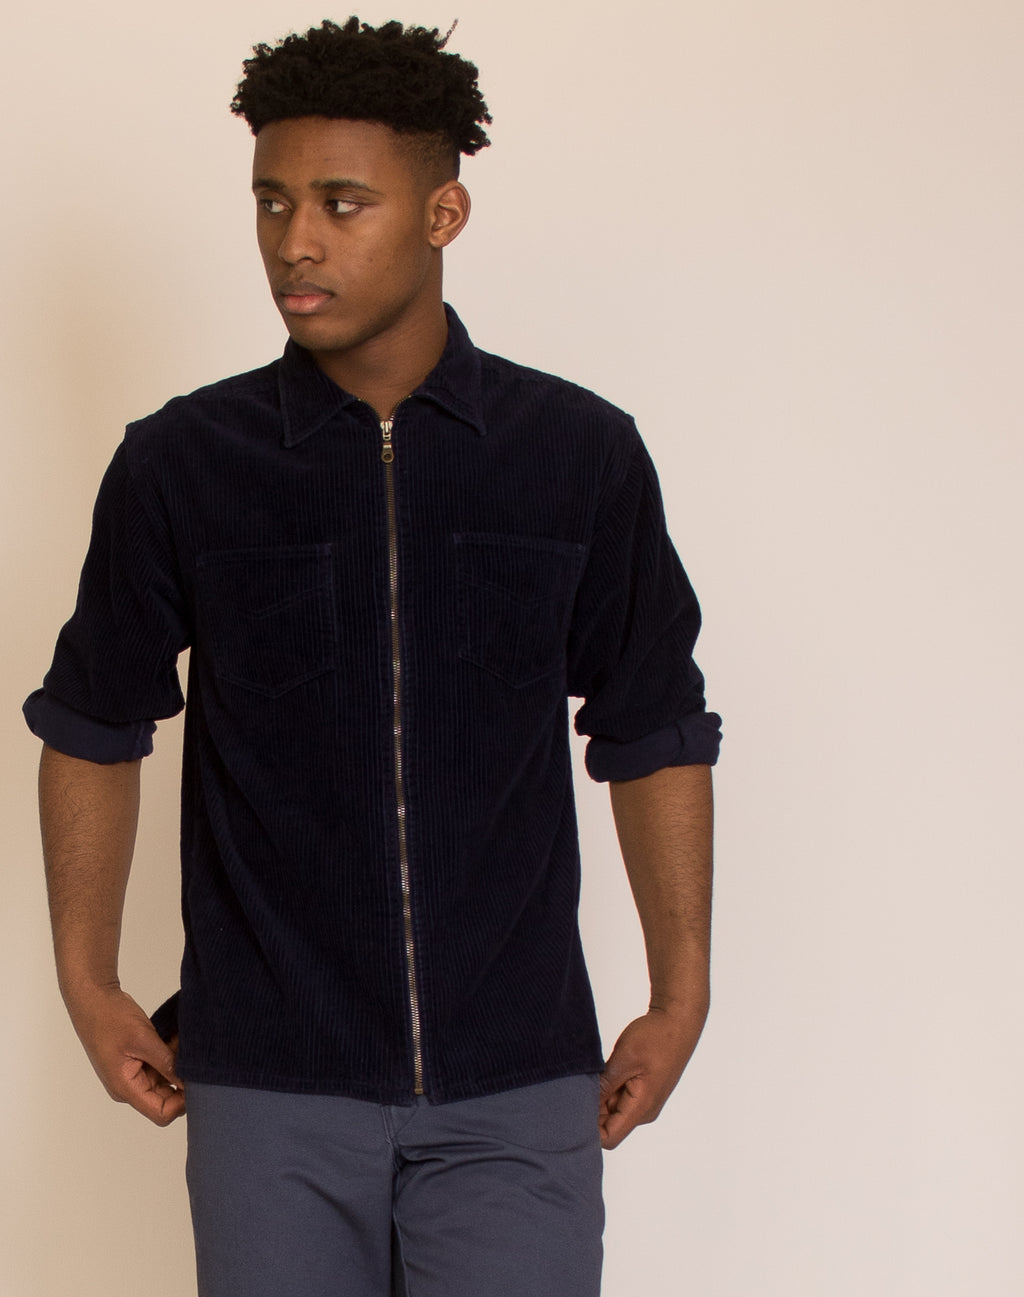 BLUE SUEDE COLLAR JACKET